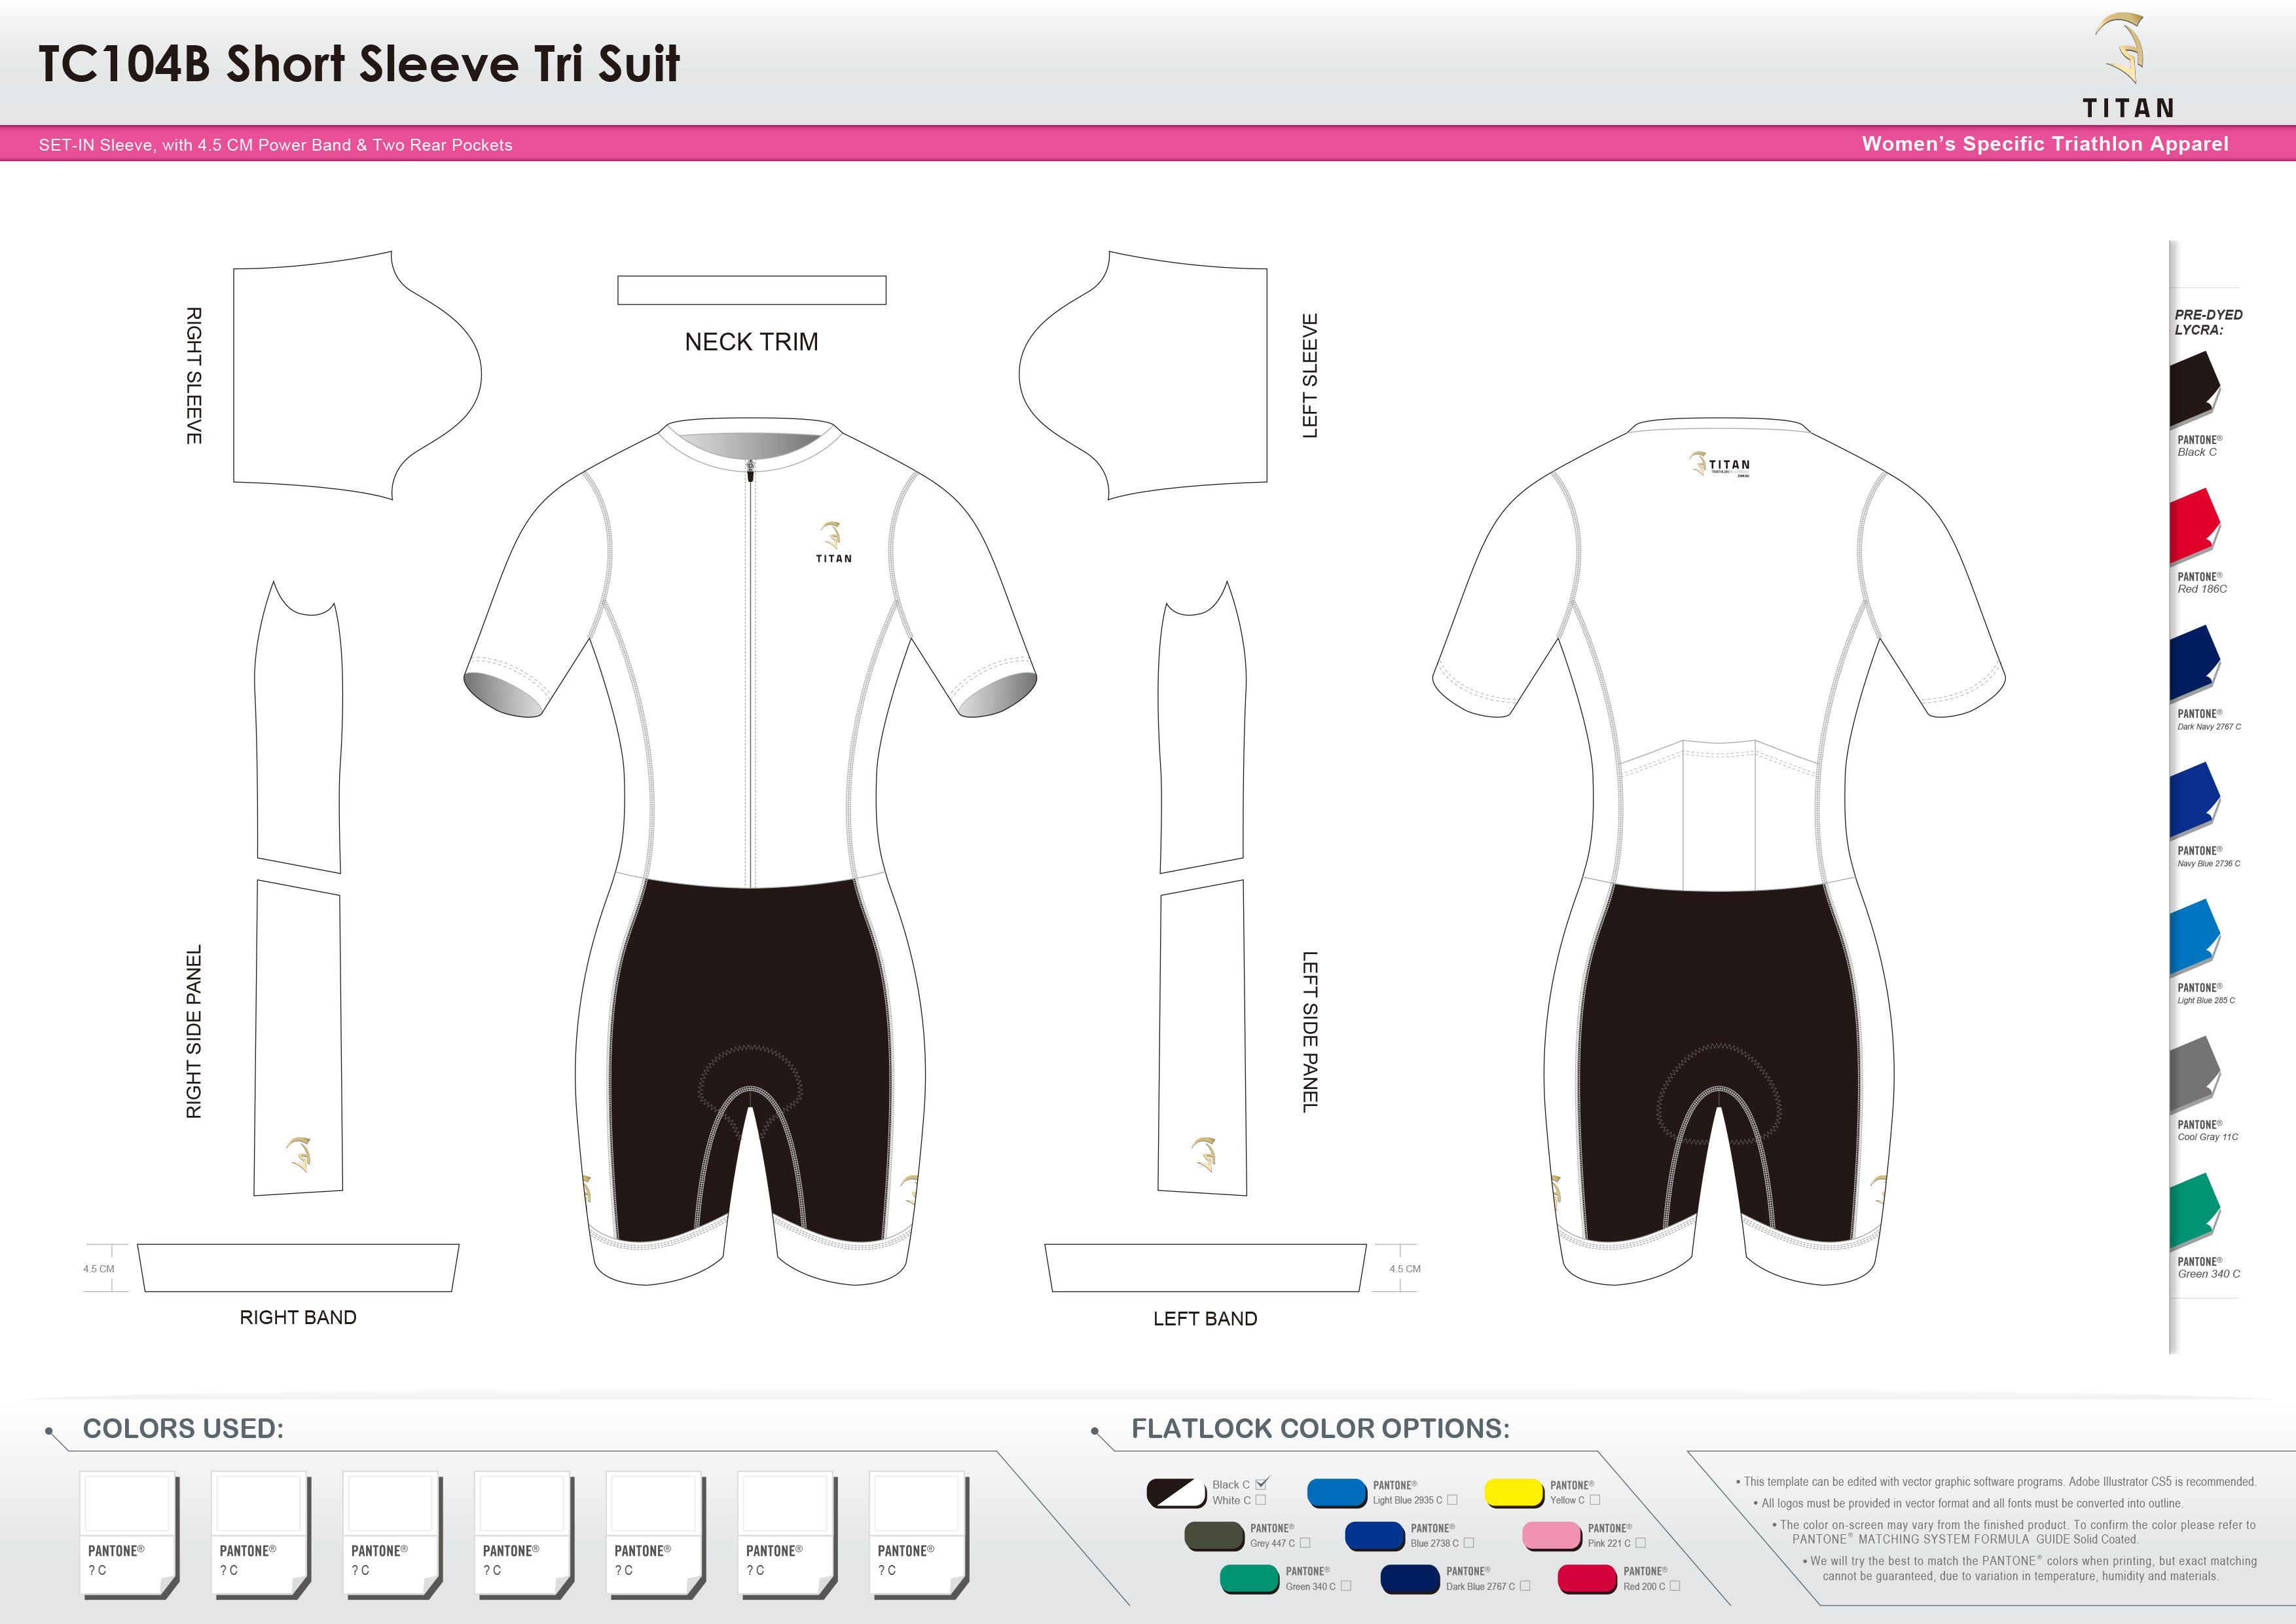 TC104B Women's Short Sleeve Tri Suit Size Chart